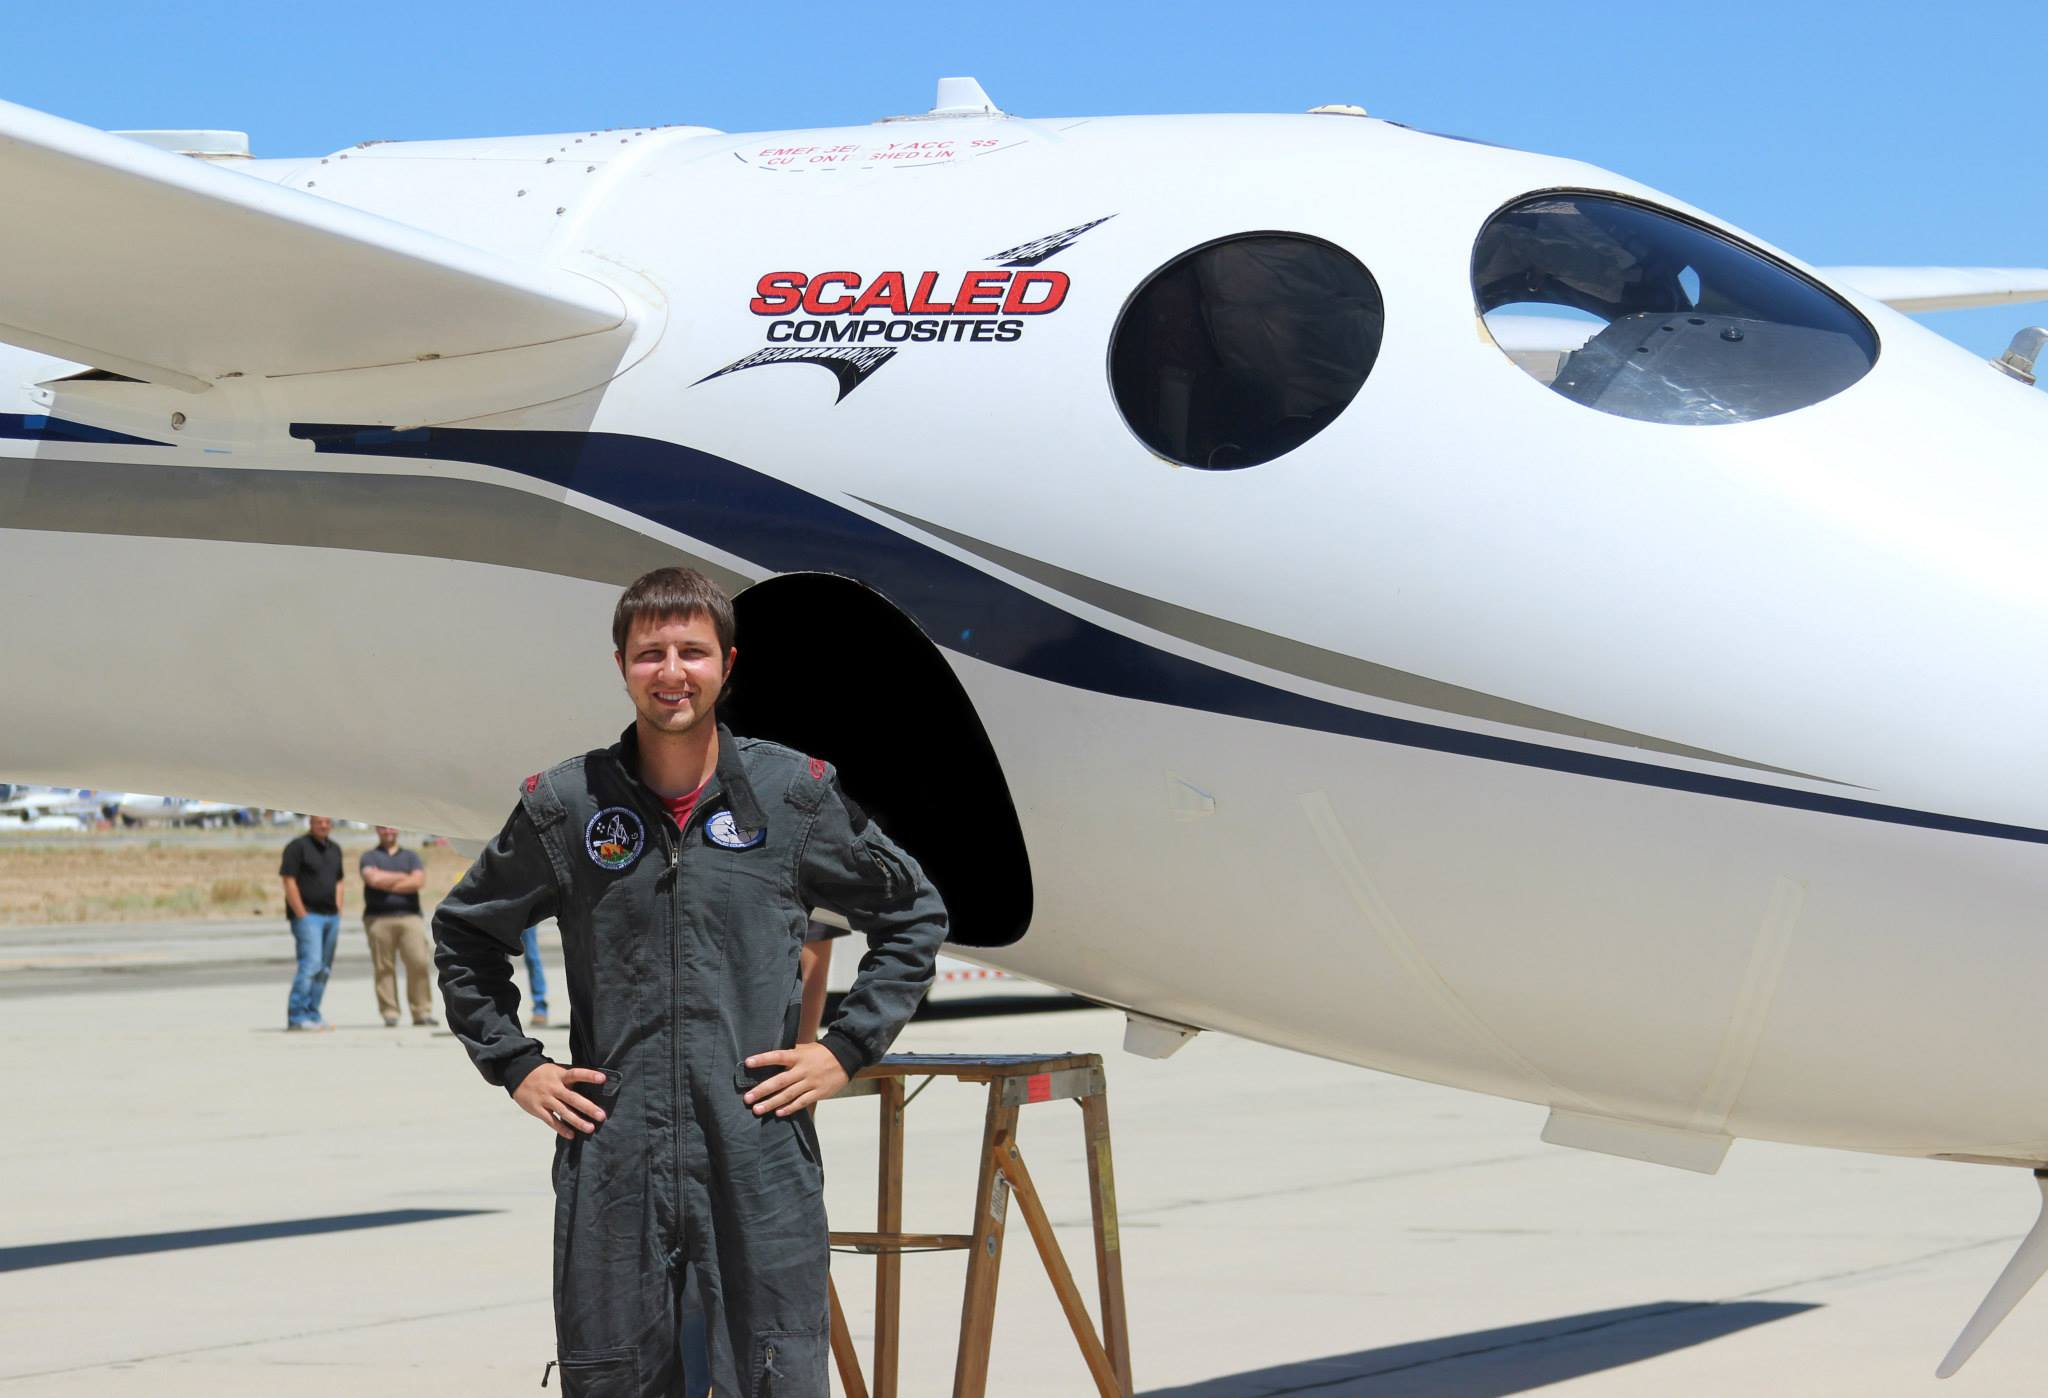 Michael Anderson is in design engineering at Scaled Composites.